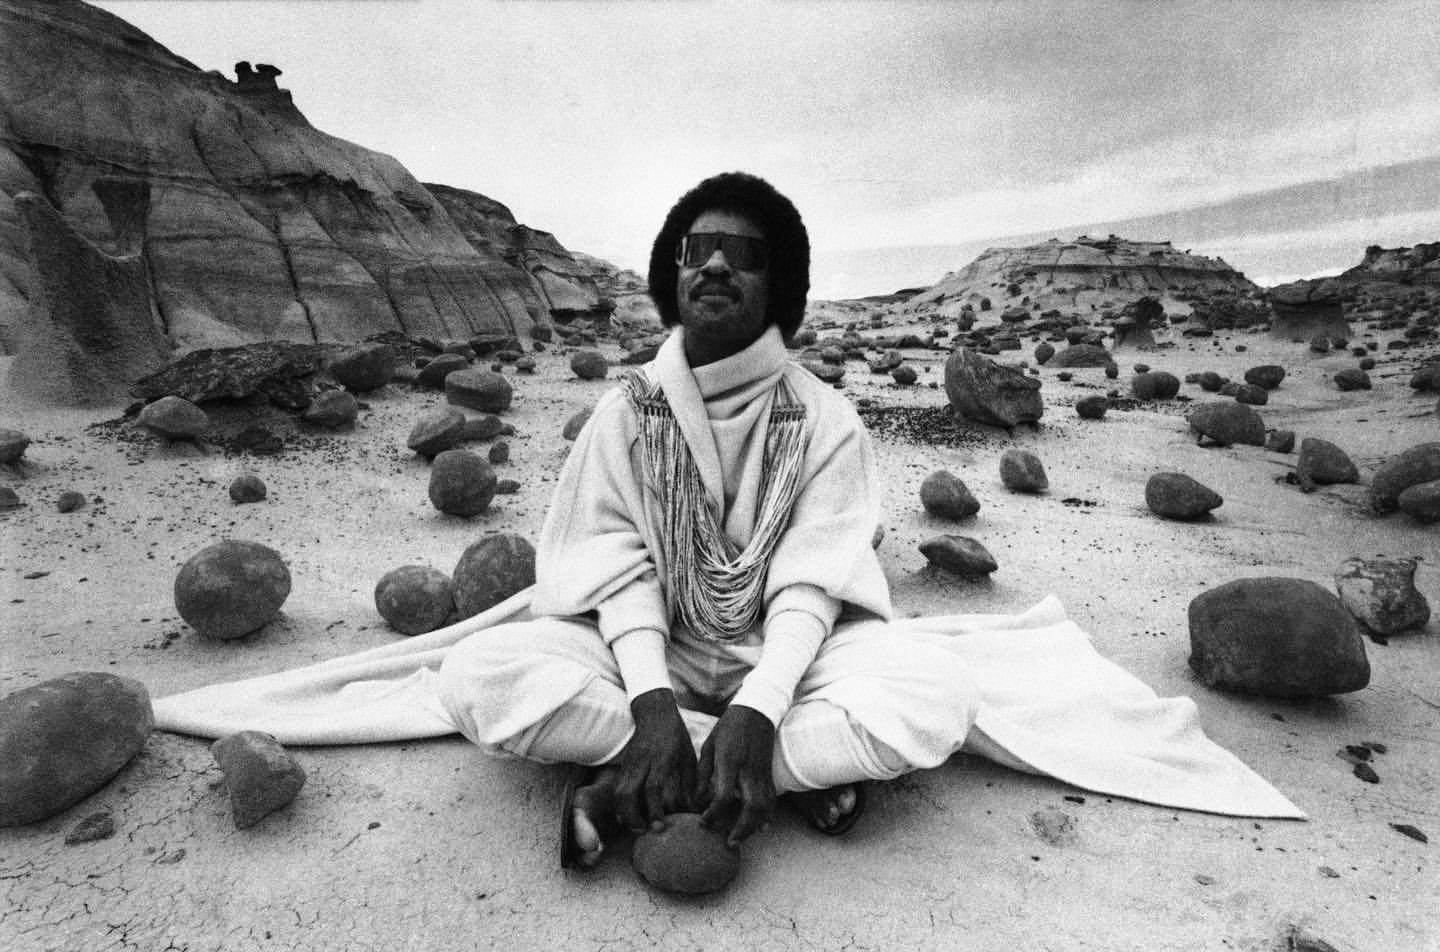 Musician Stevie Wonder sits amid the eerie rocks of the Bisti Badlands in Farmington, New Mexico, filming a commercial, 1982.